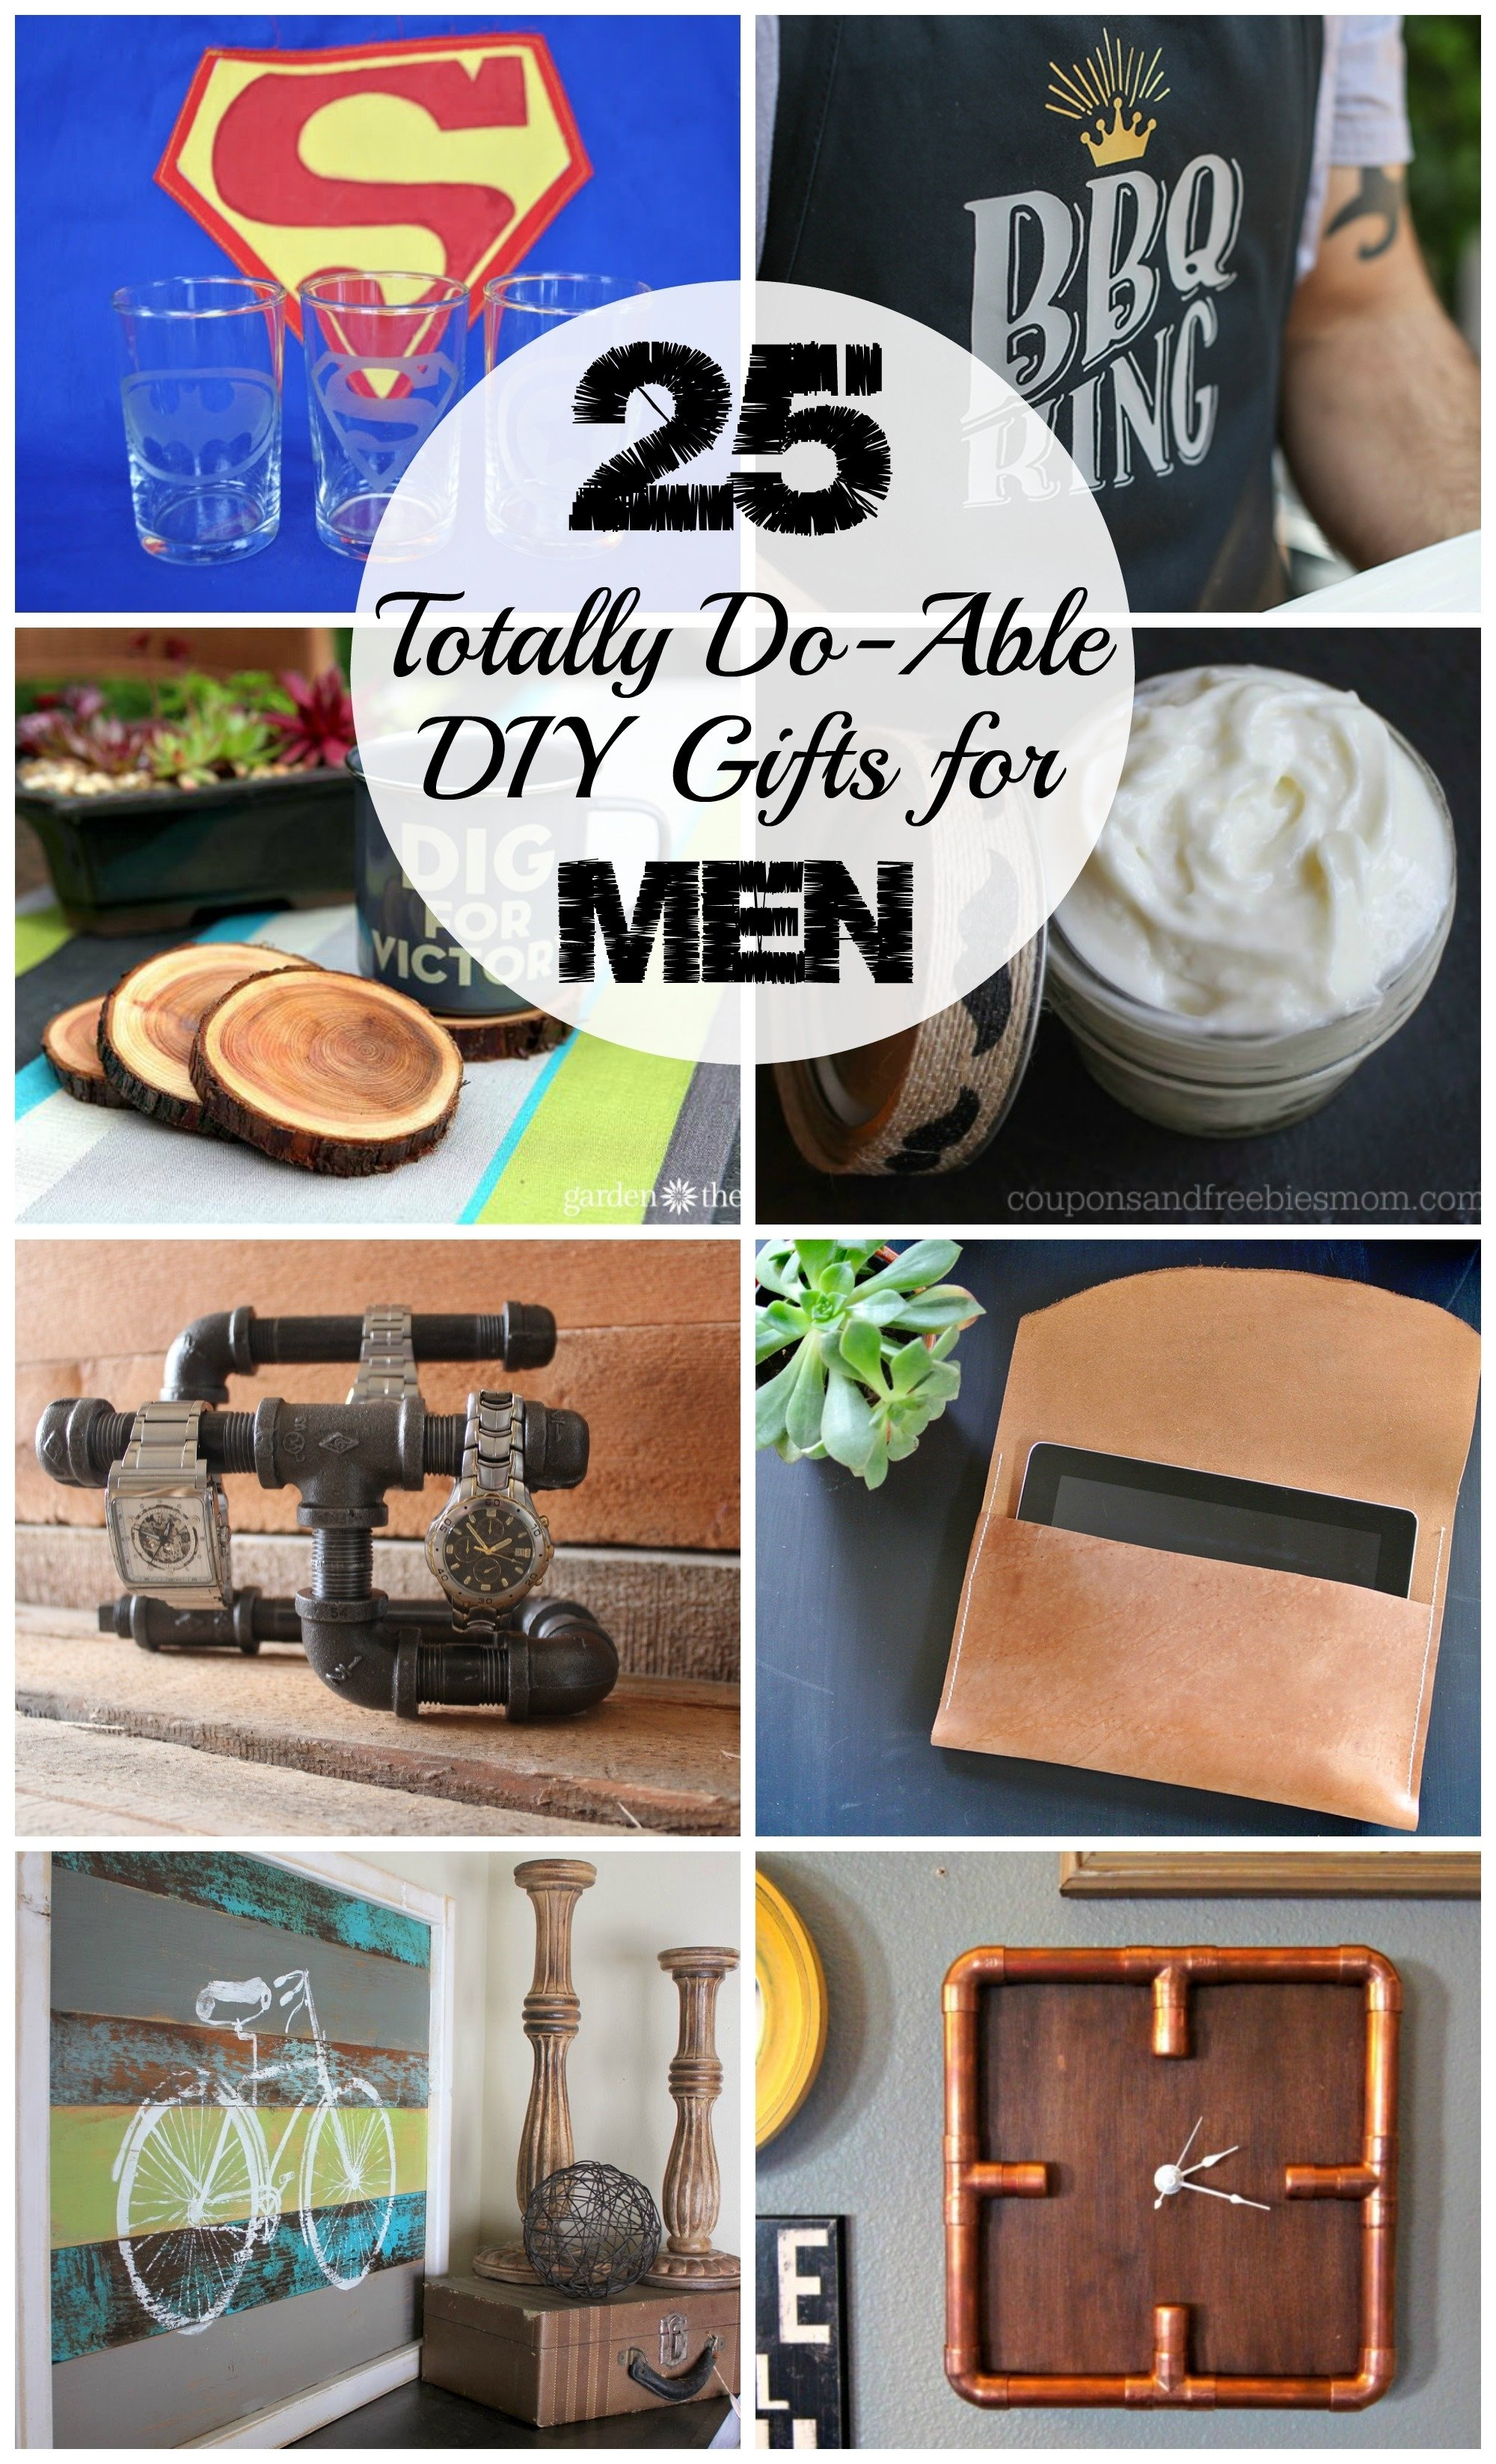 10 Most Recommended Creative Gift Ideas For Men 25 diy gifts for men love create celebrate 2 2020